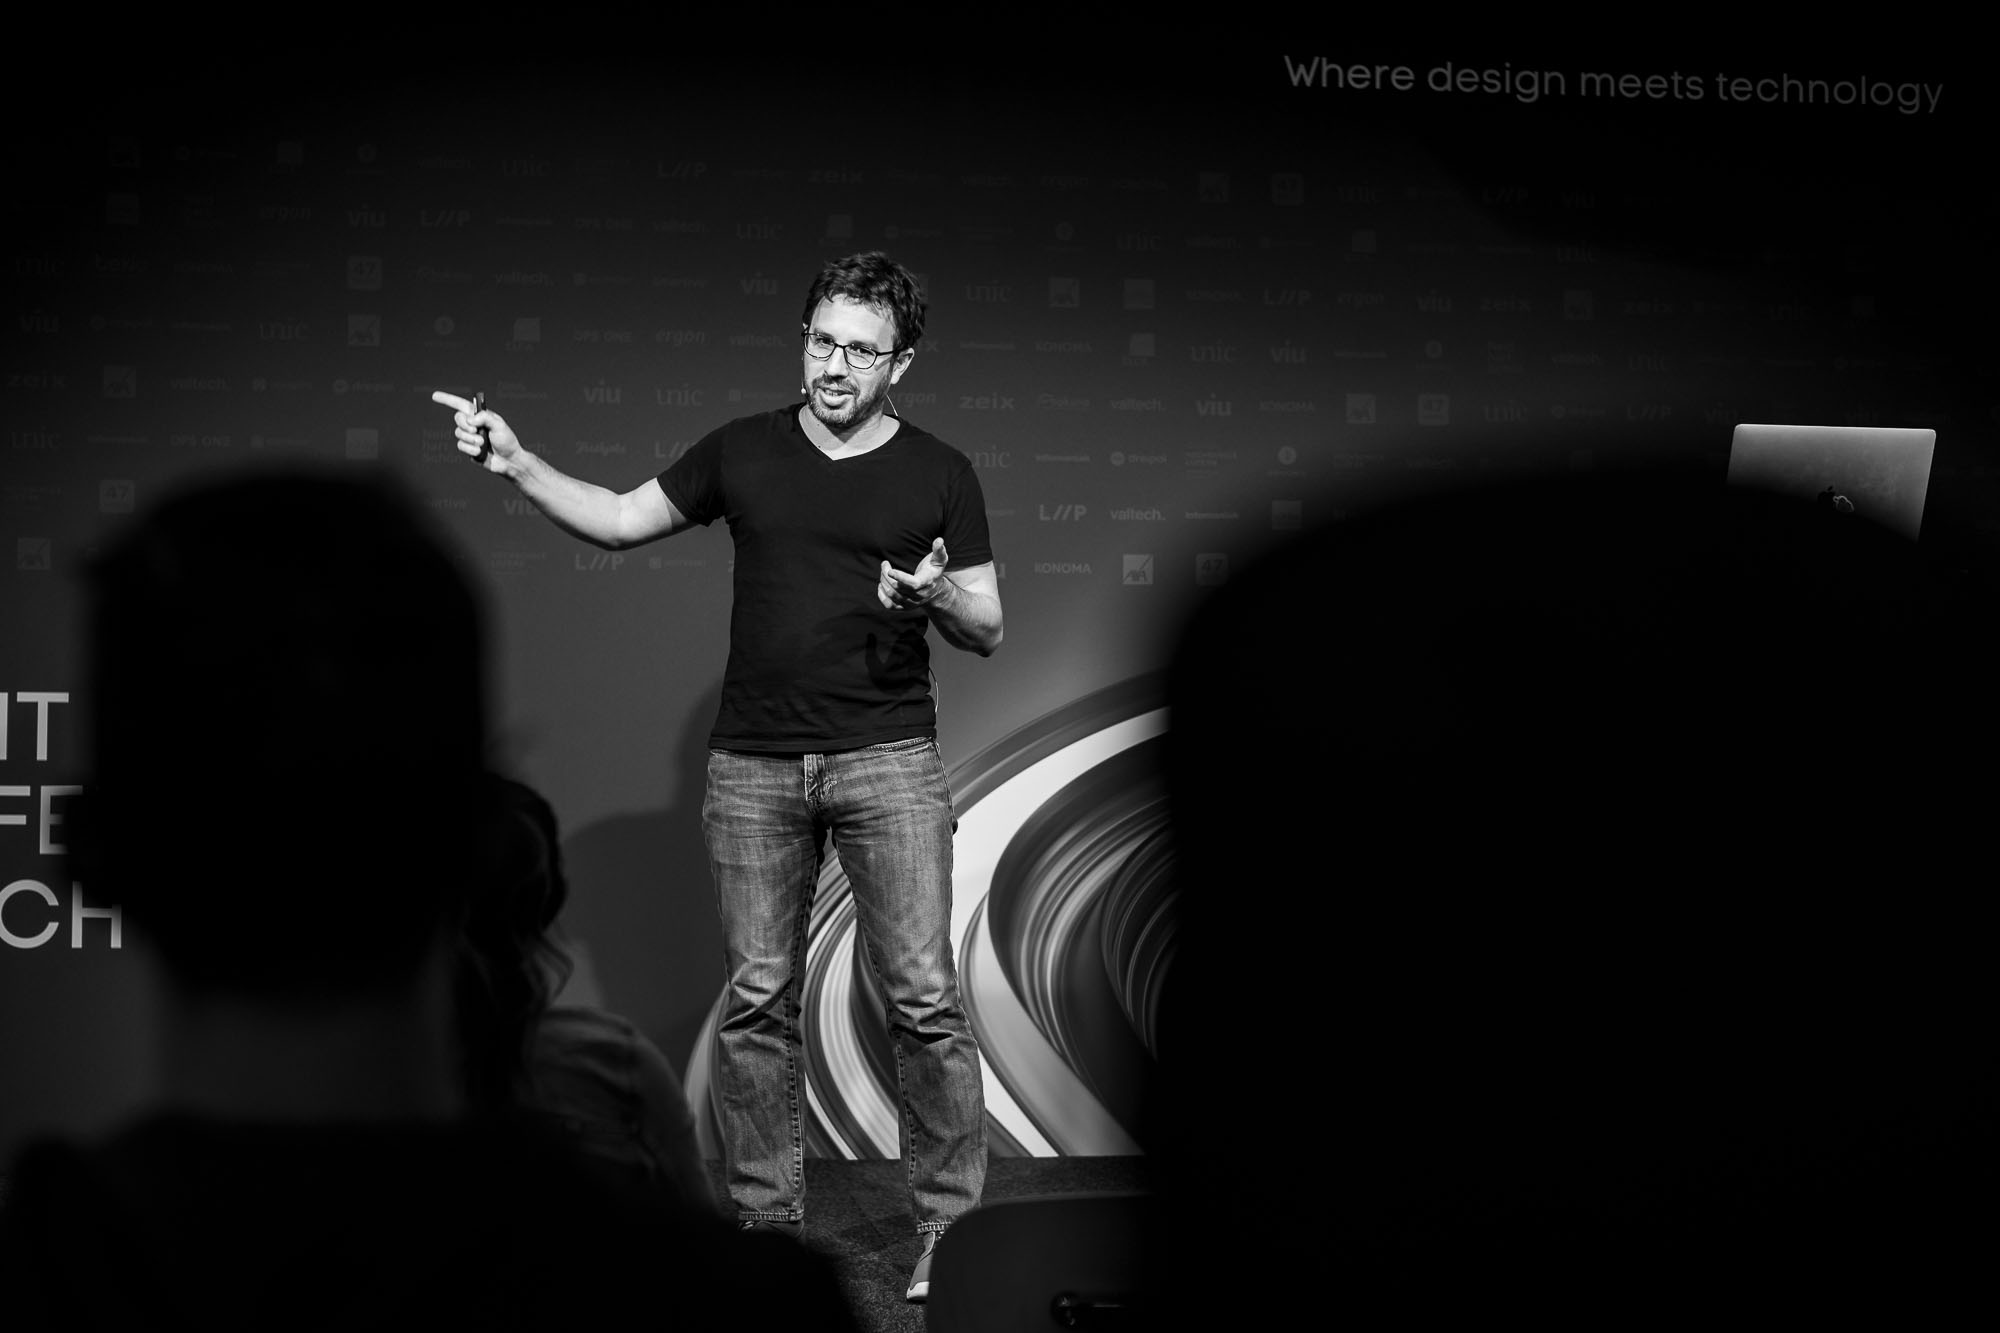 Alon Kiriati on stage at Front Conference 2021